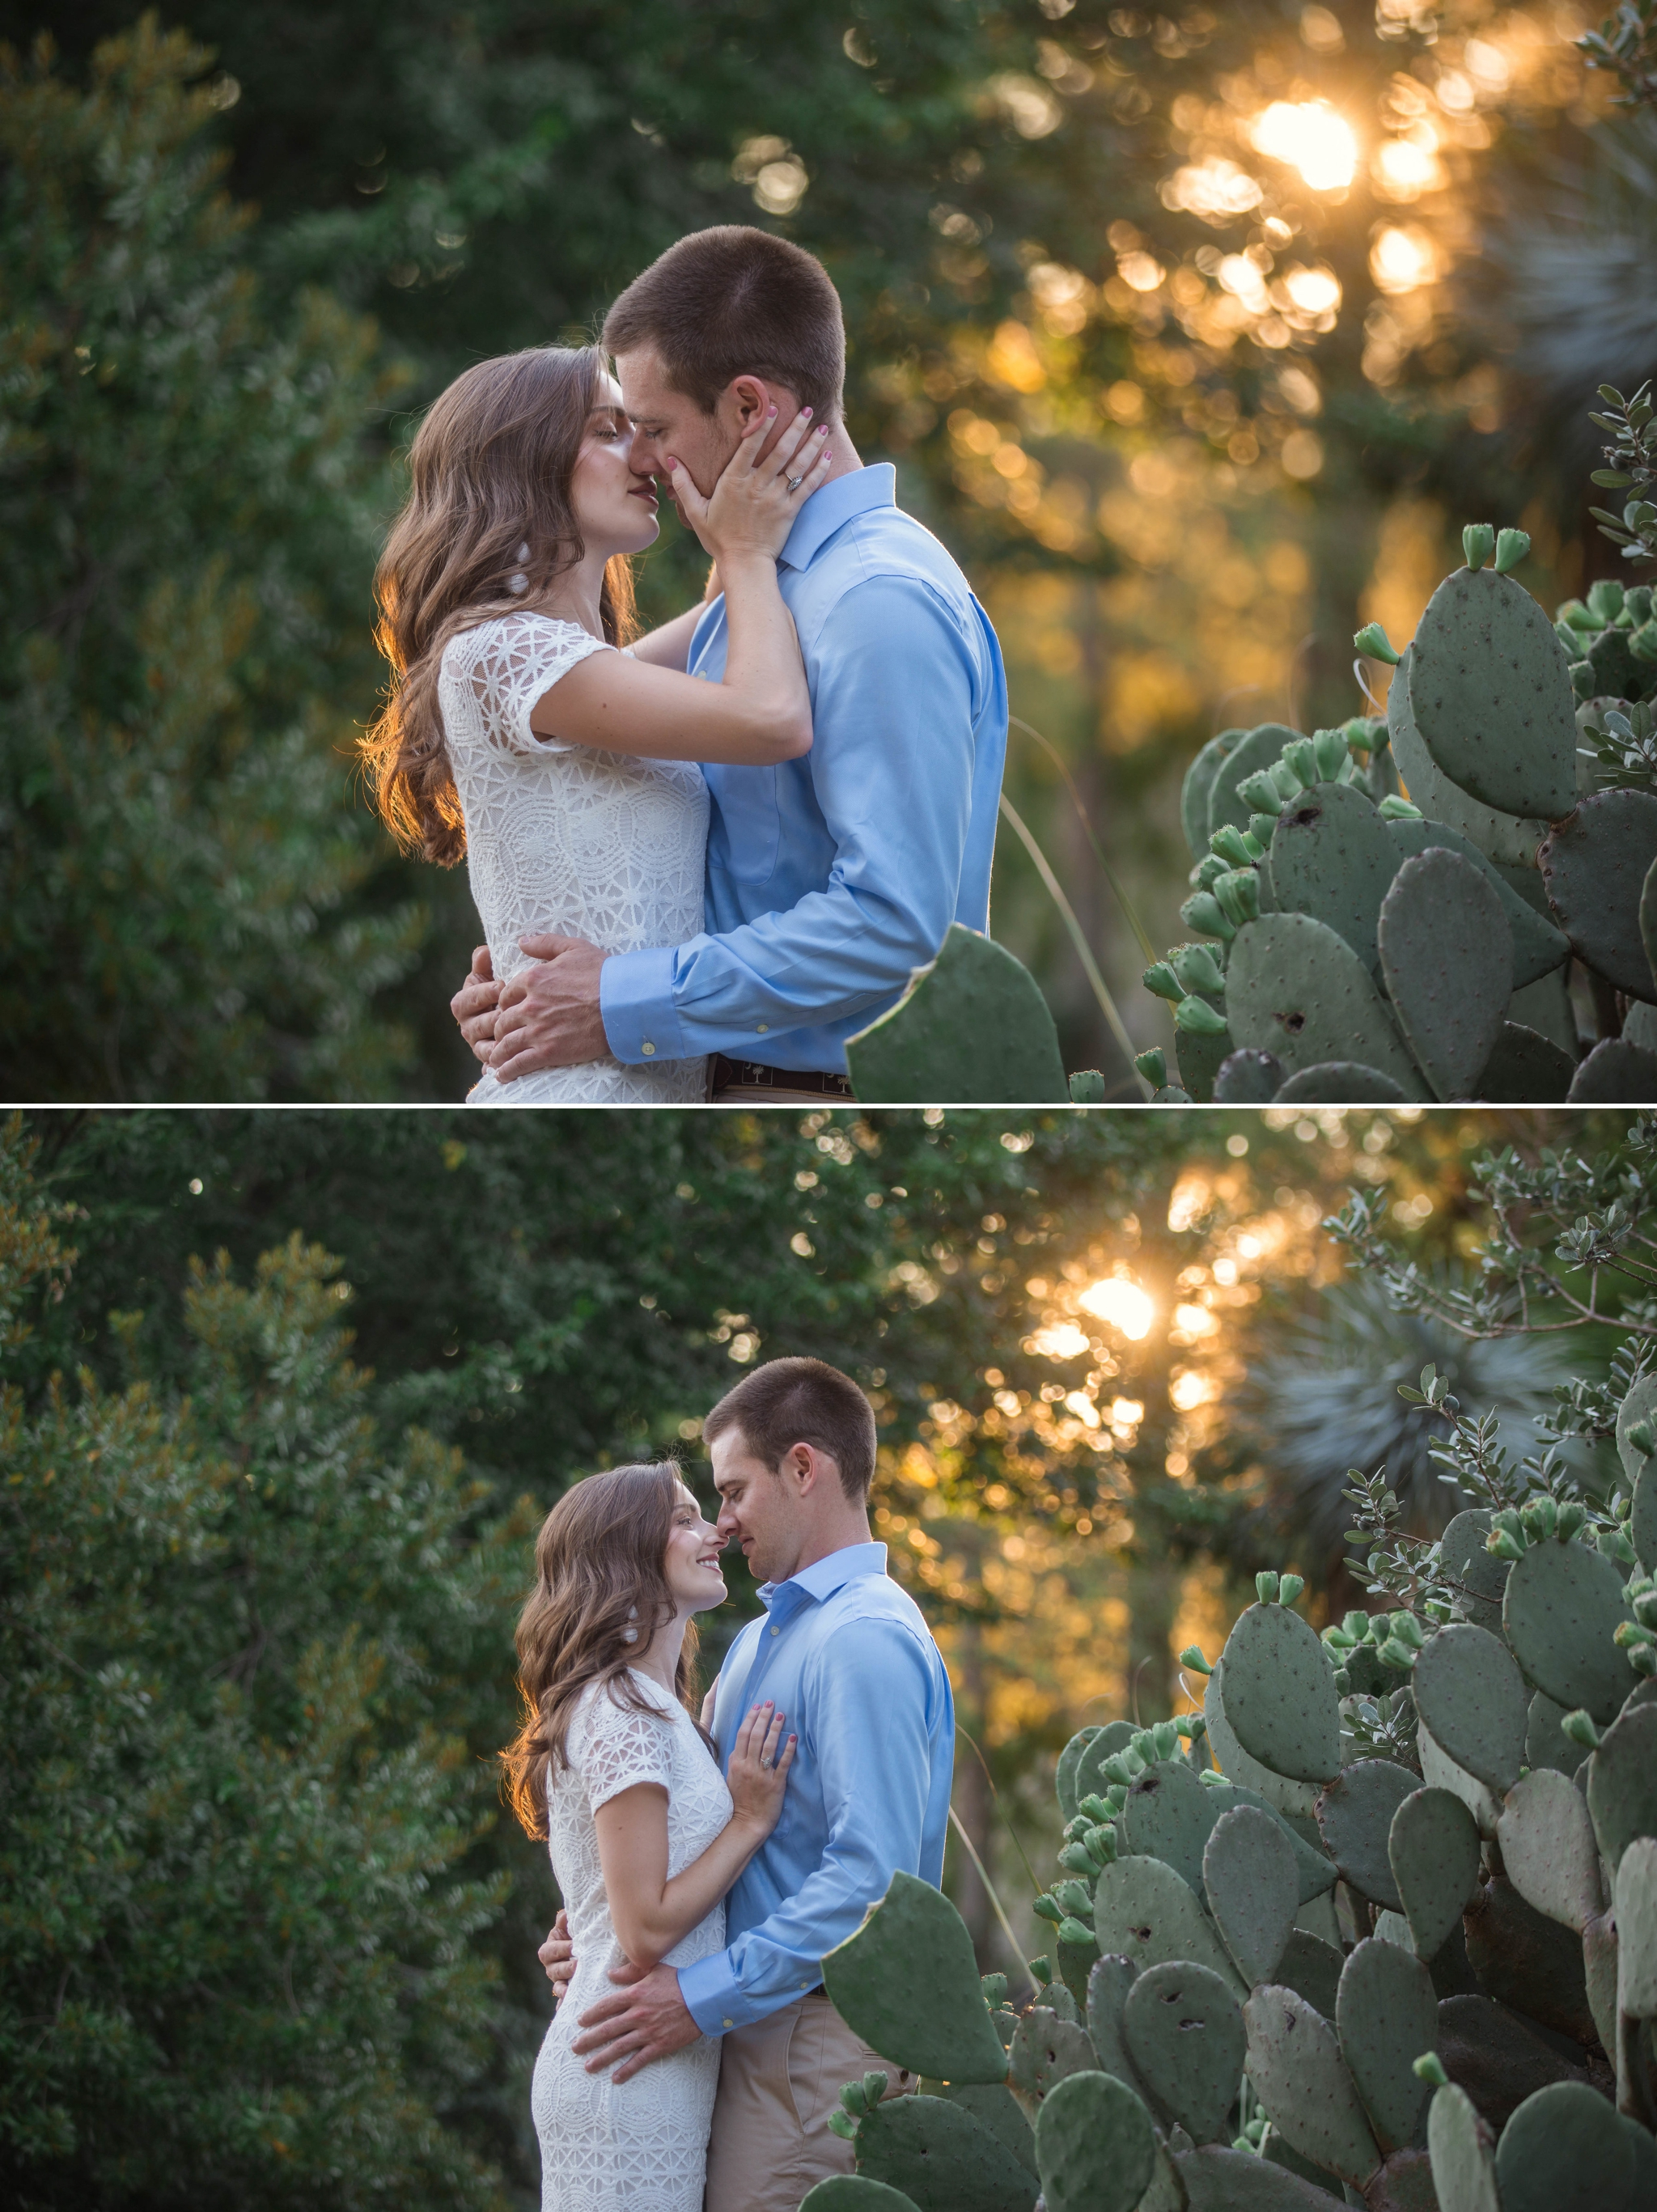 Paige + Tyler - Engagement Photography Session at the JC Raulston Arboretum - Raleigh Wedding Photographer 6.jpg